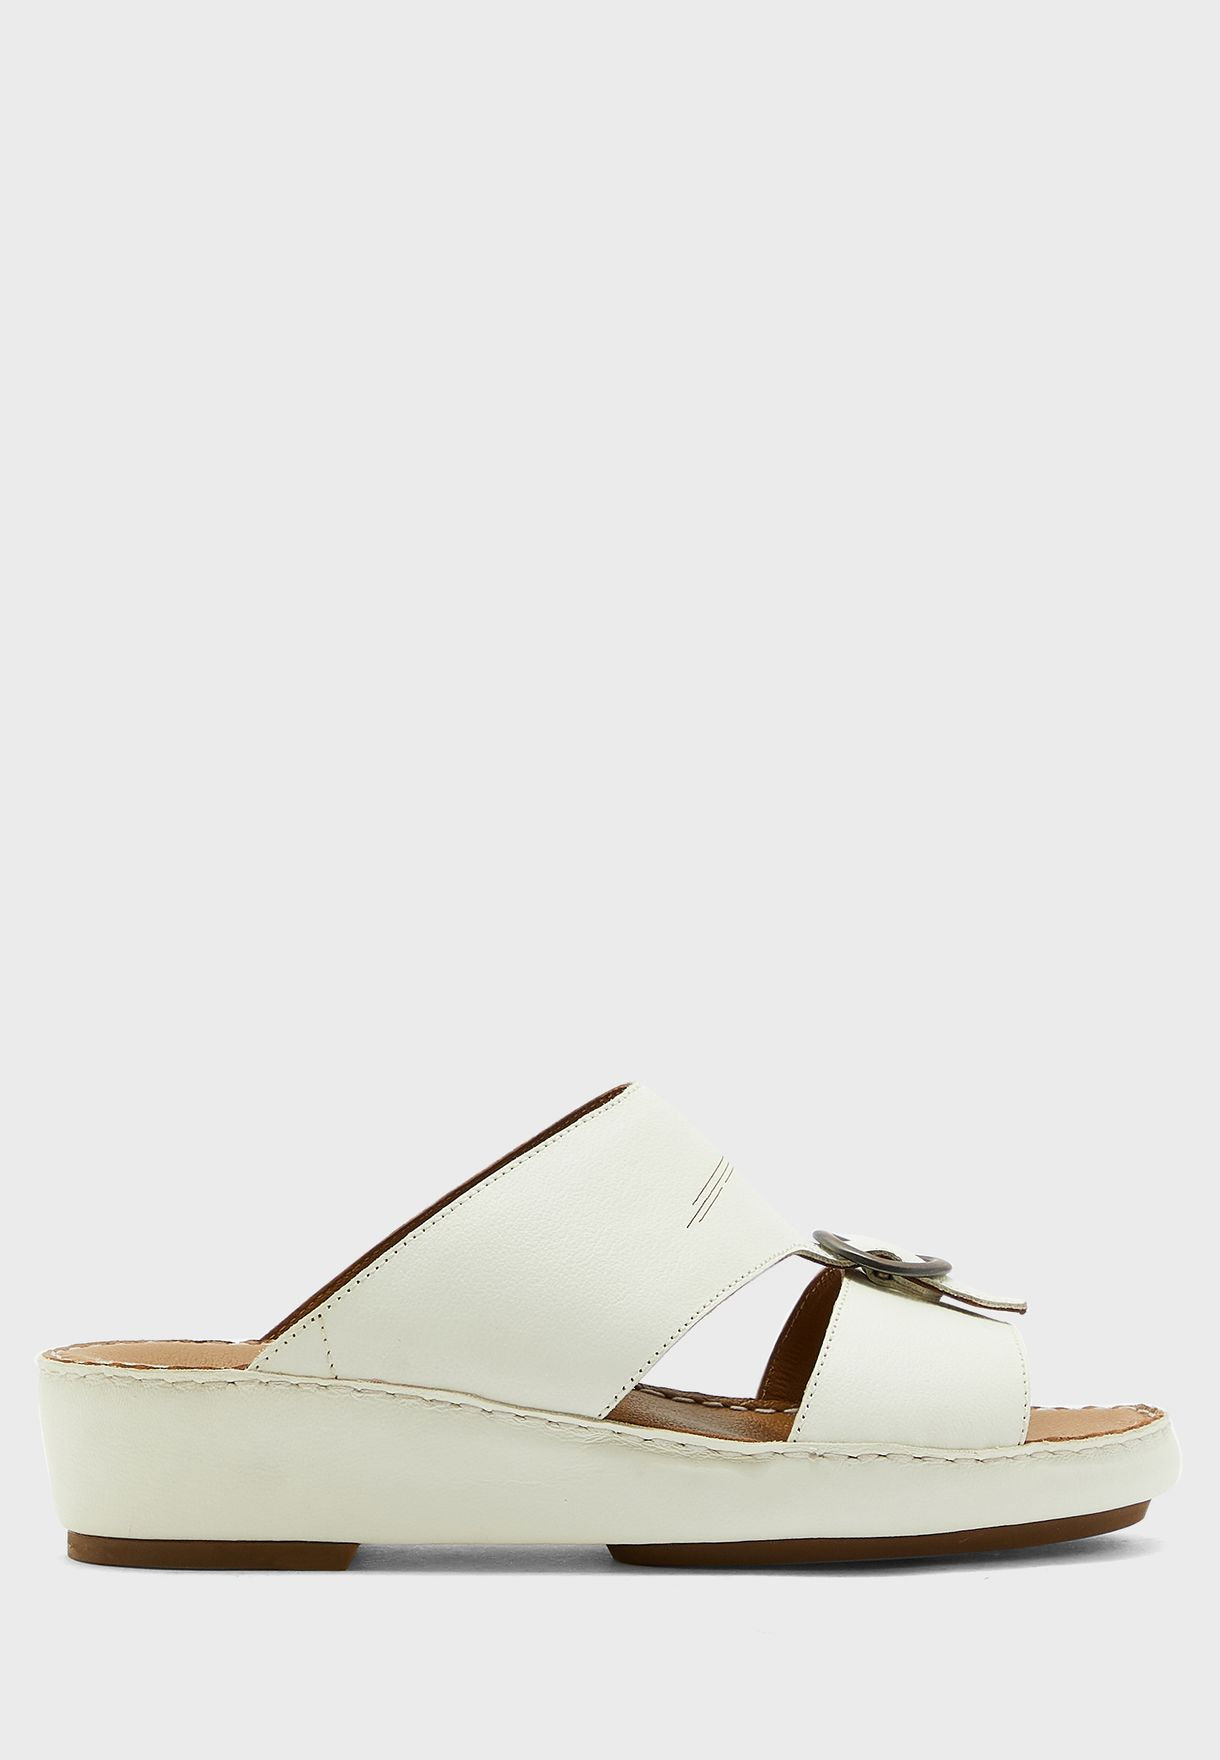 Alef Arabian Sandals